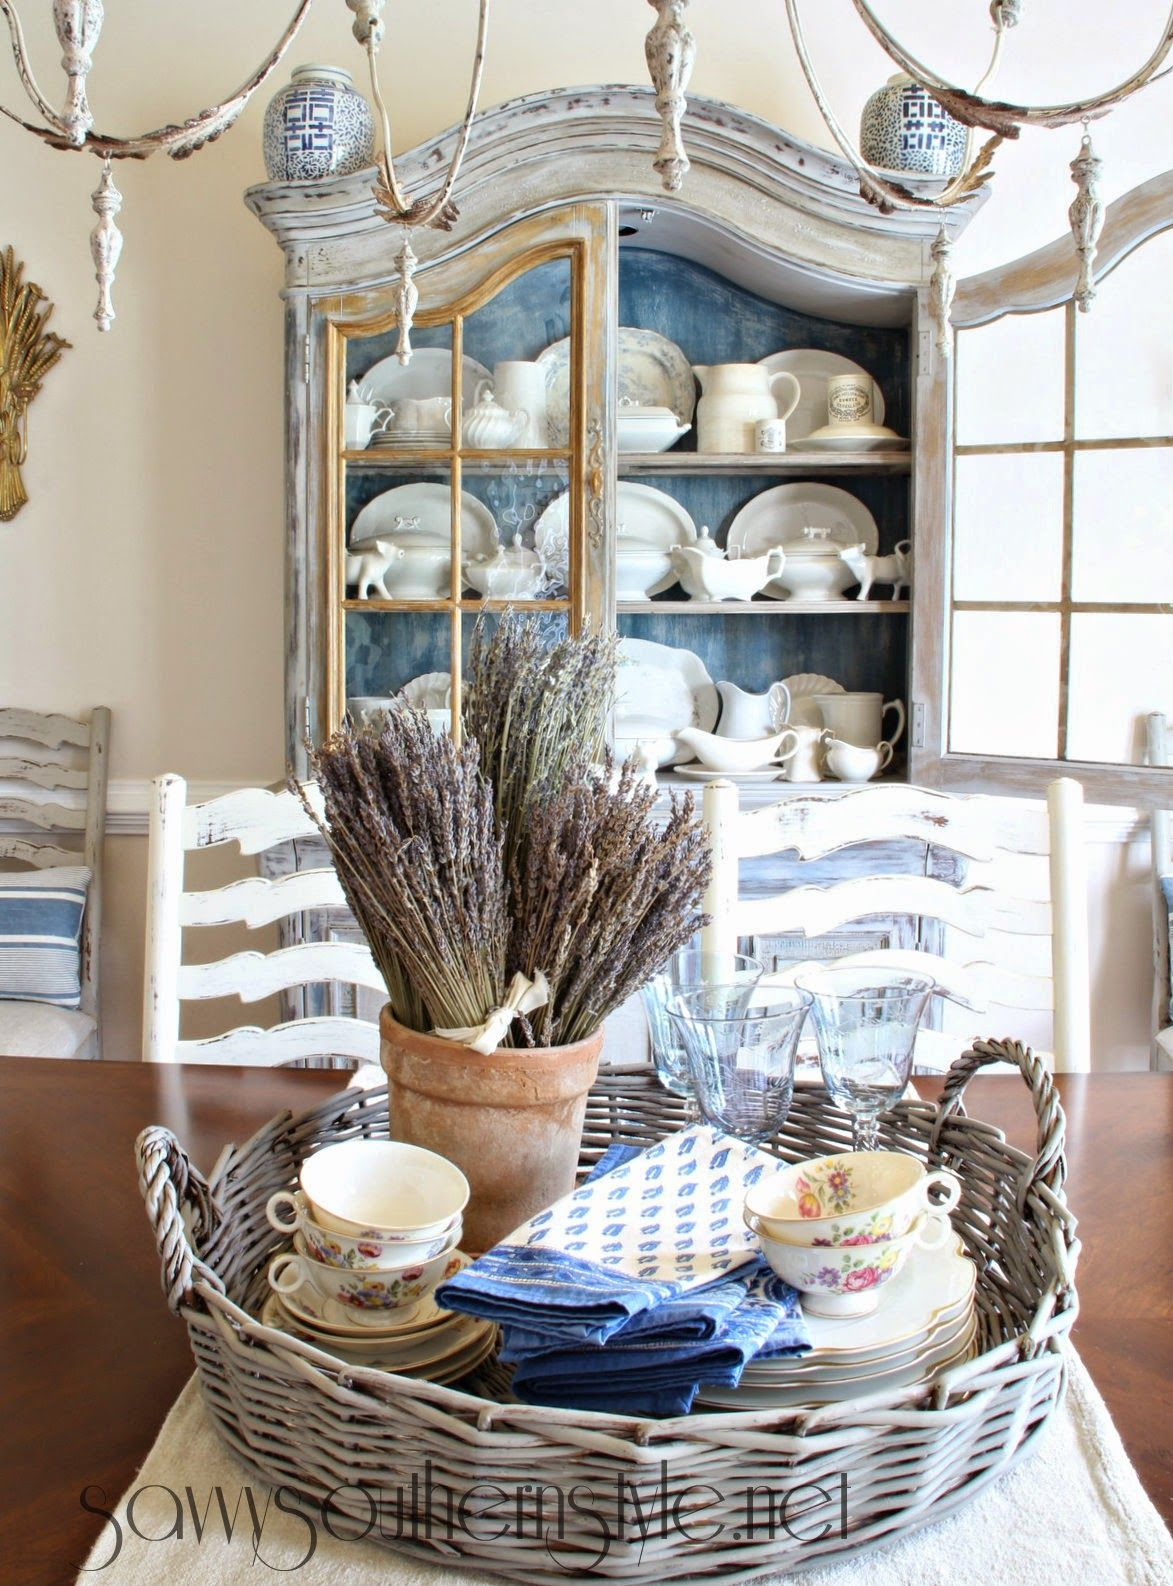 Living Room Southern Country Decor 1000 images about decorating inspiration on pinterest farmhouse country french style i like how the inside of cabinet is painted blue it makes dishes display beautifully